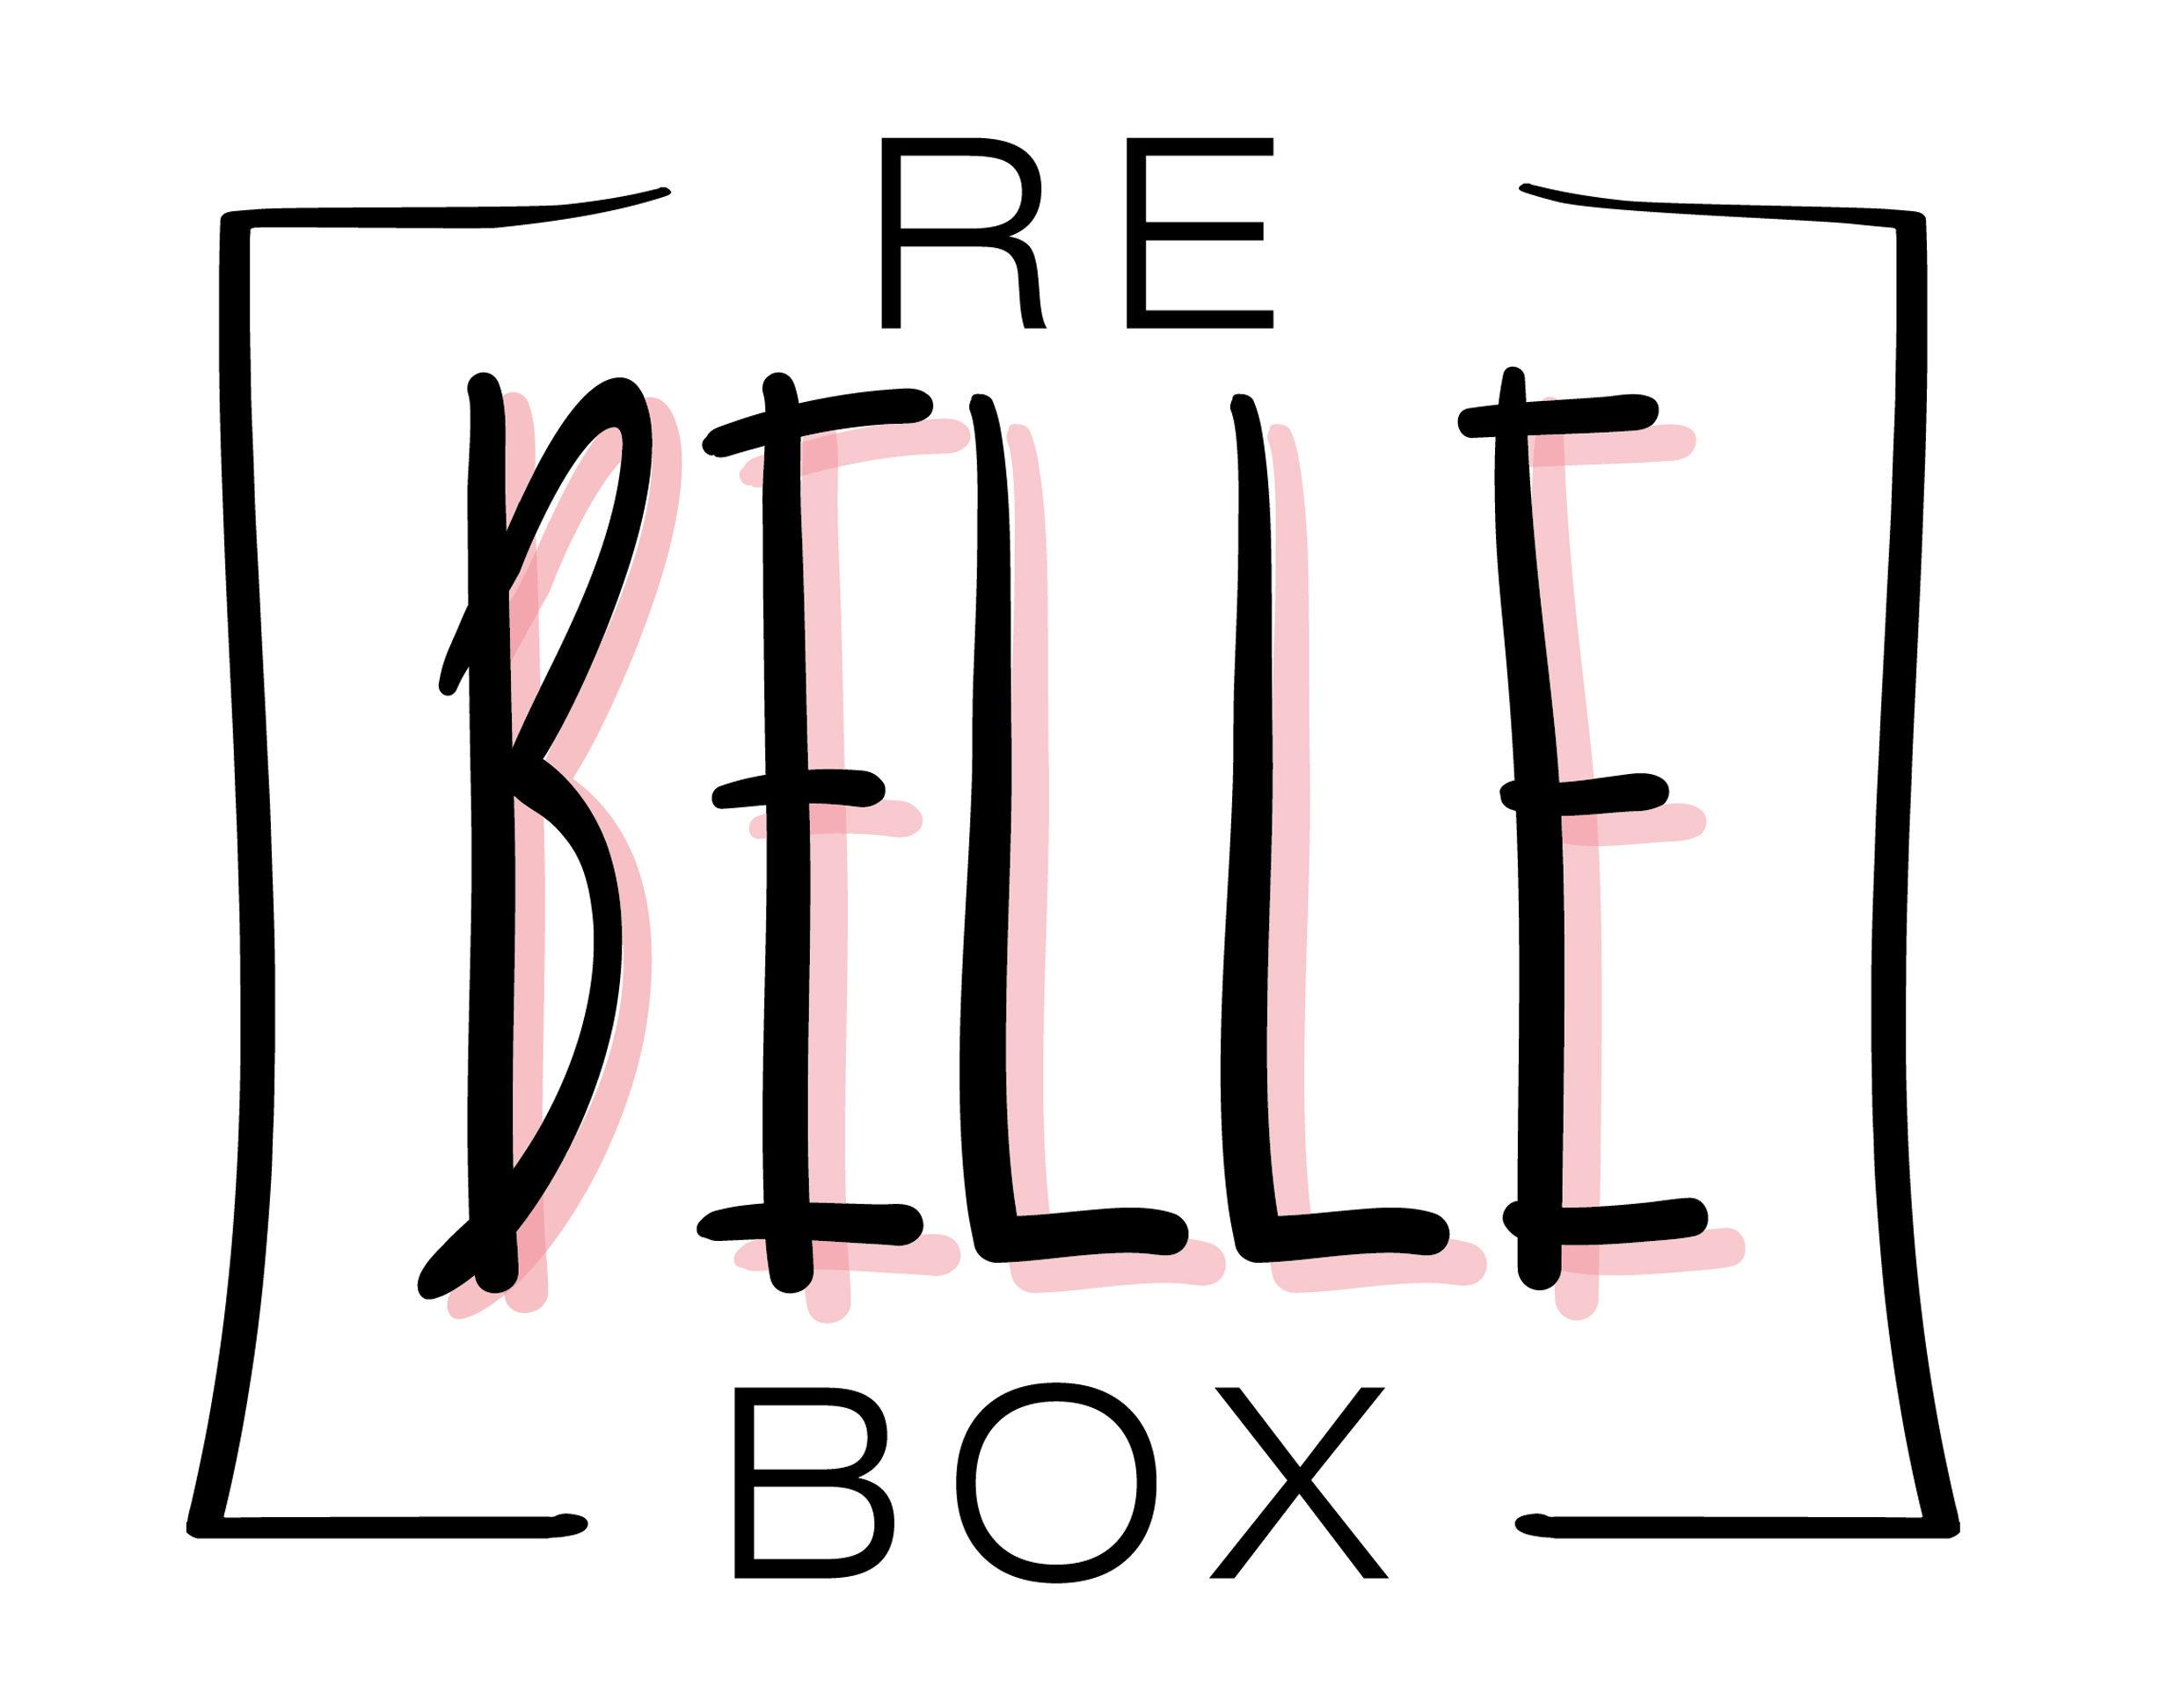 Re-Belle Box